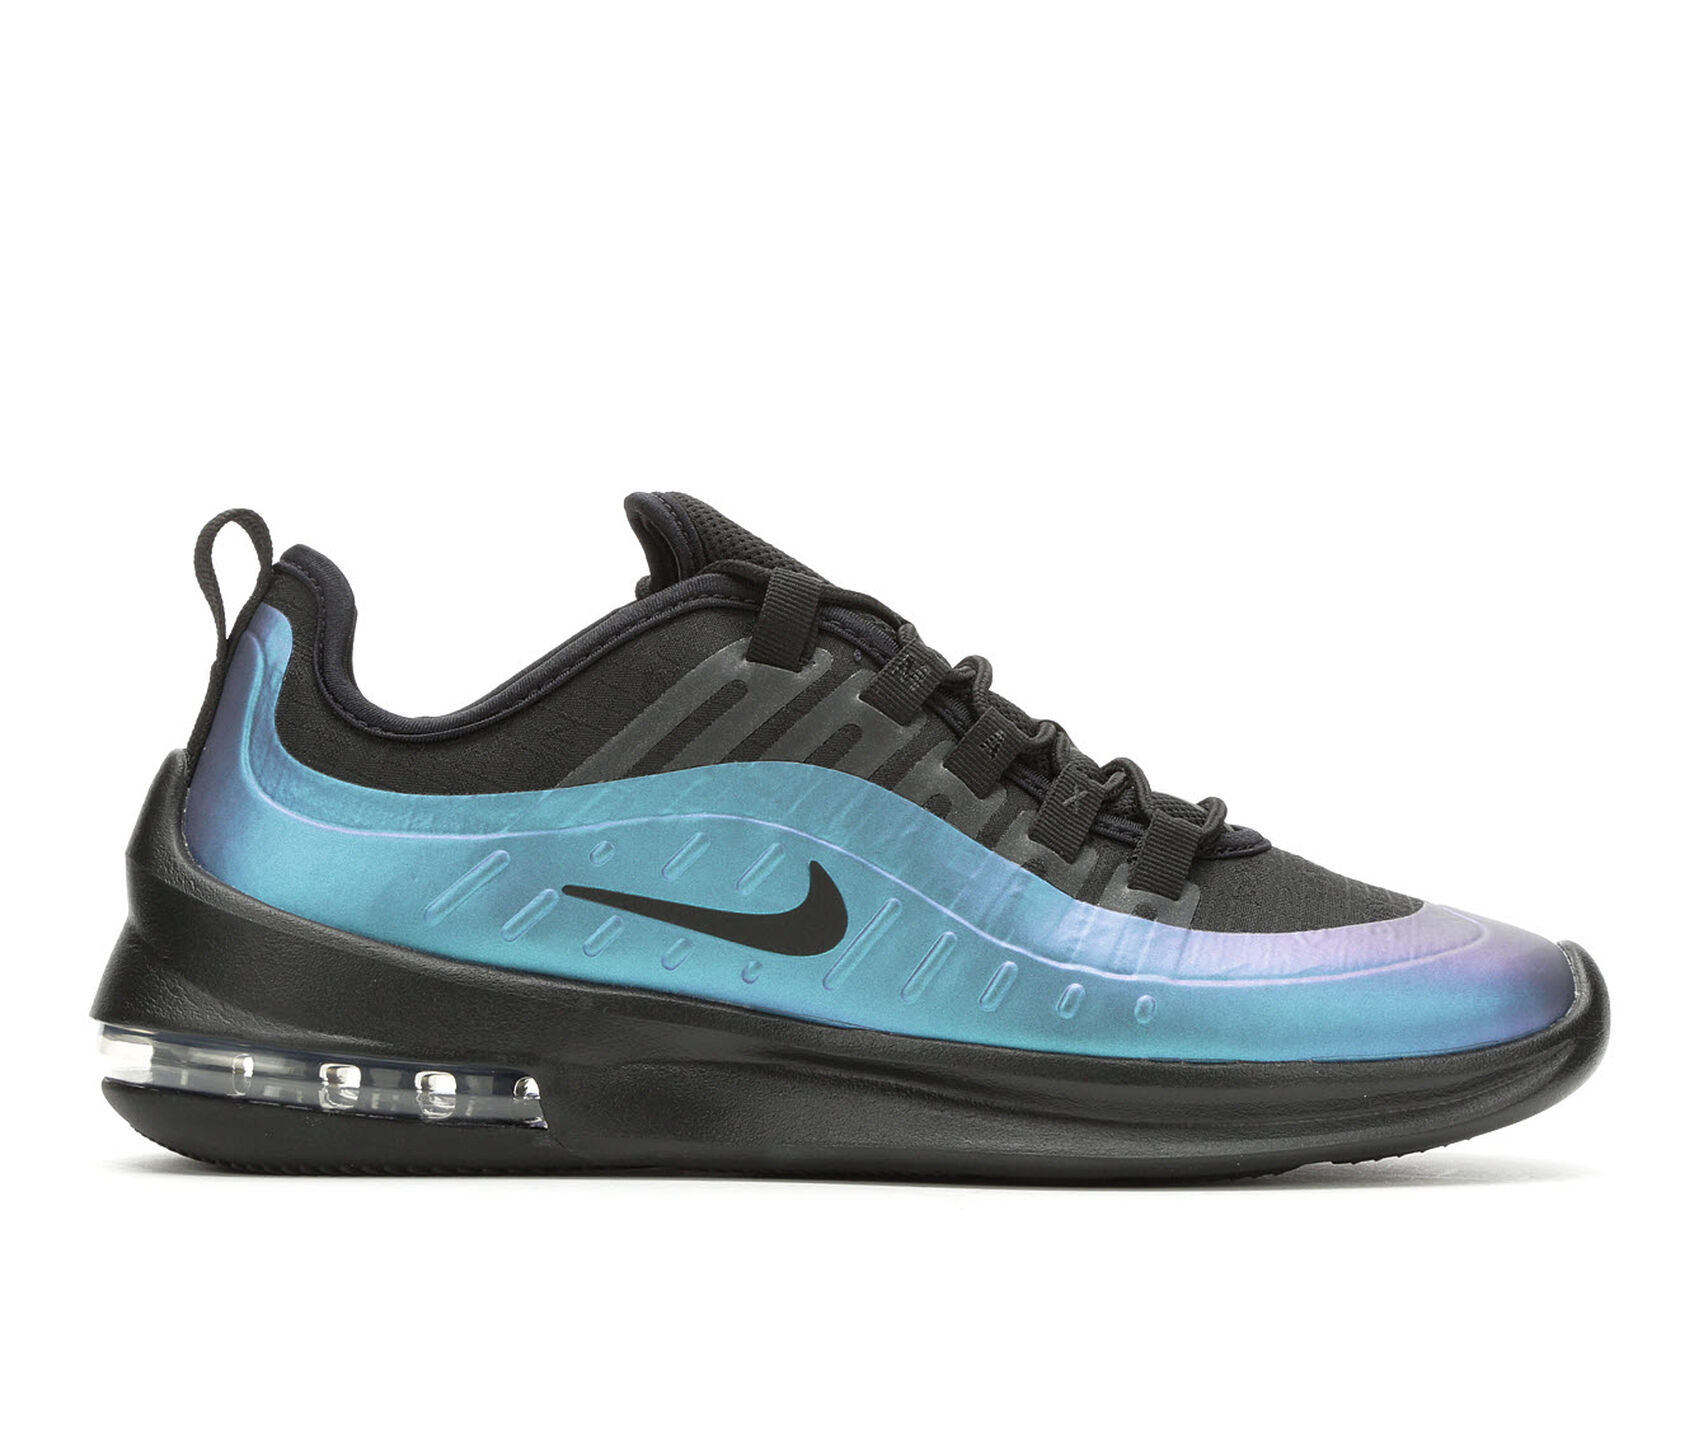 new arrival 46137 6e258 ... Nike Air Max Axis Premium Sneakers. Previous